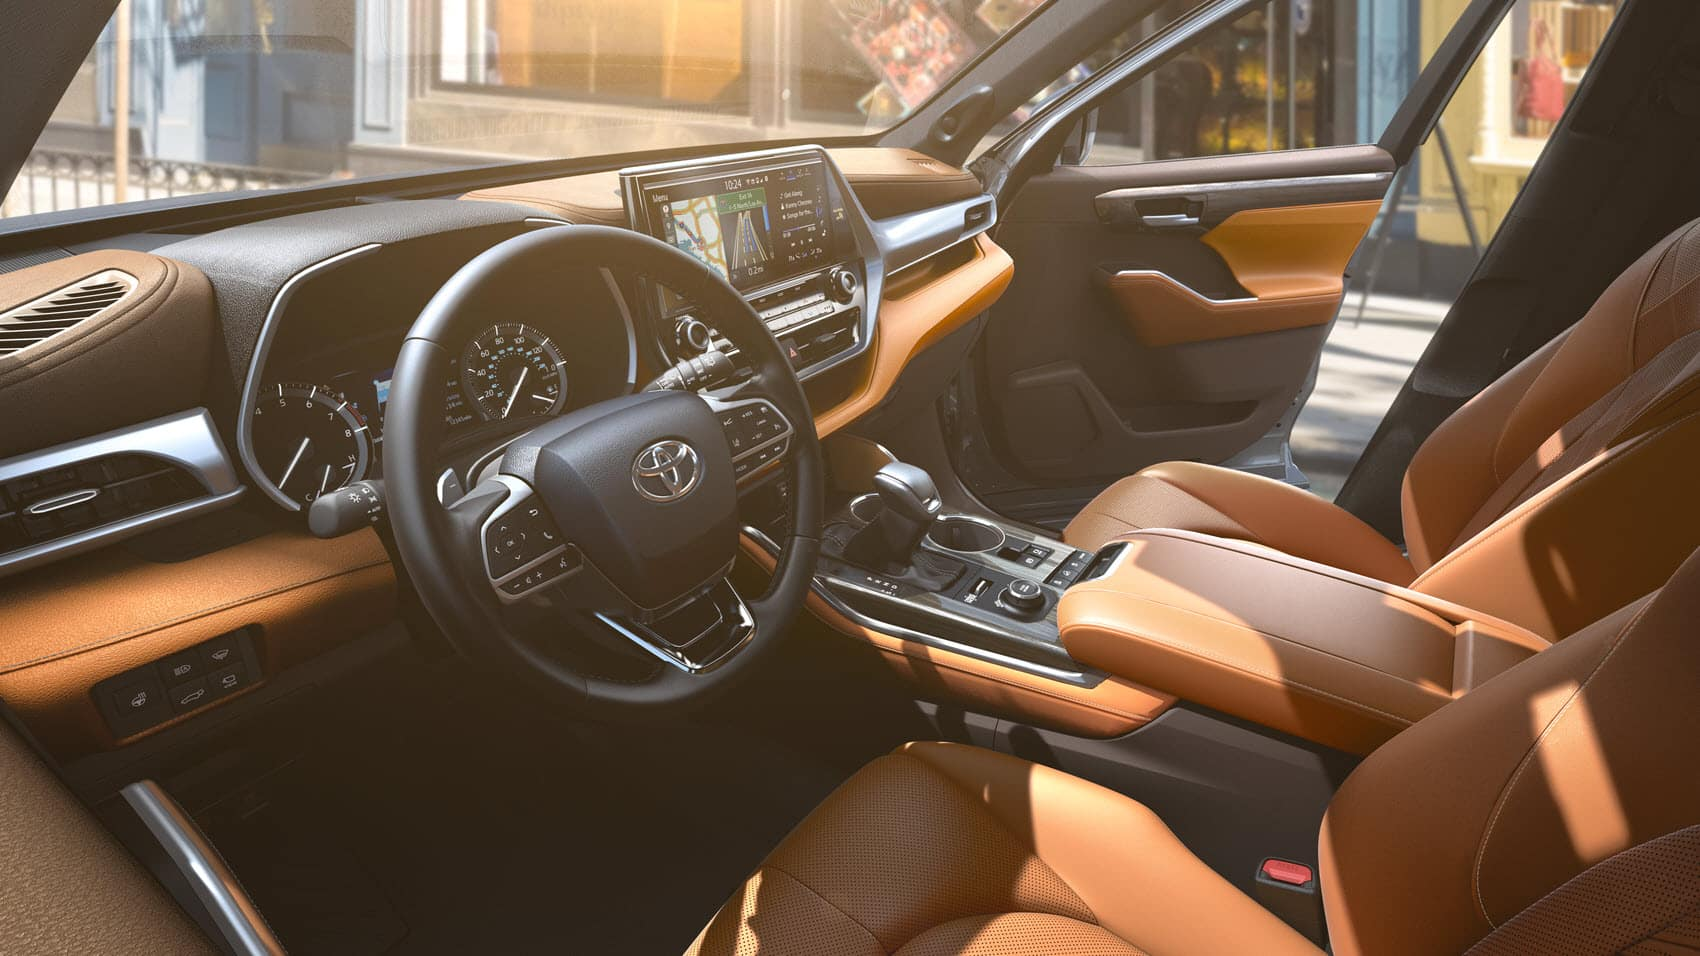 Toyota Highlander Interior